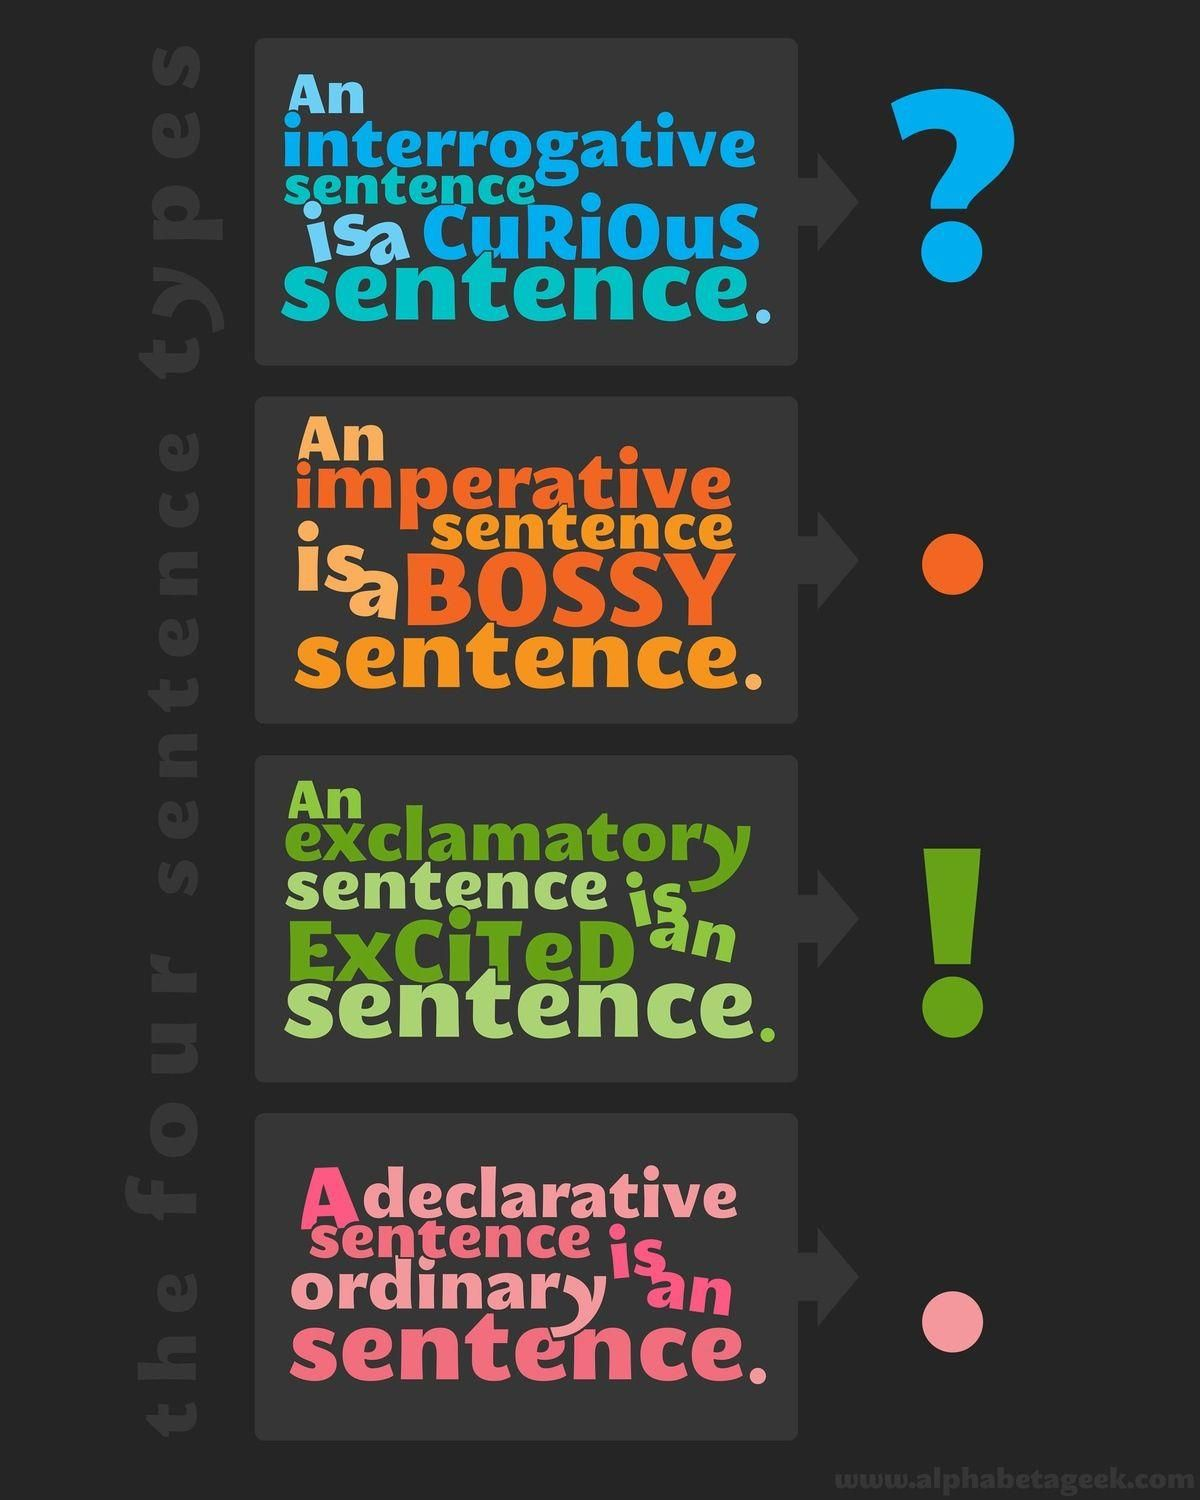 The Four Sentence Types